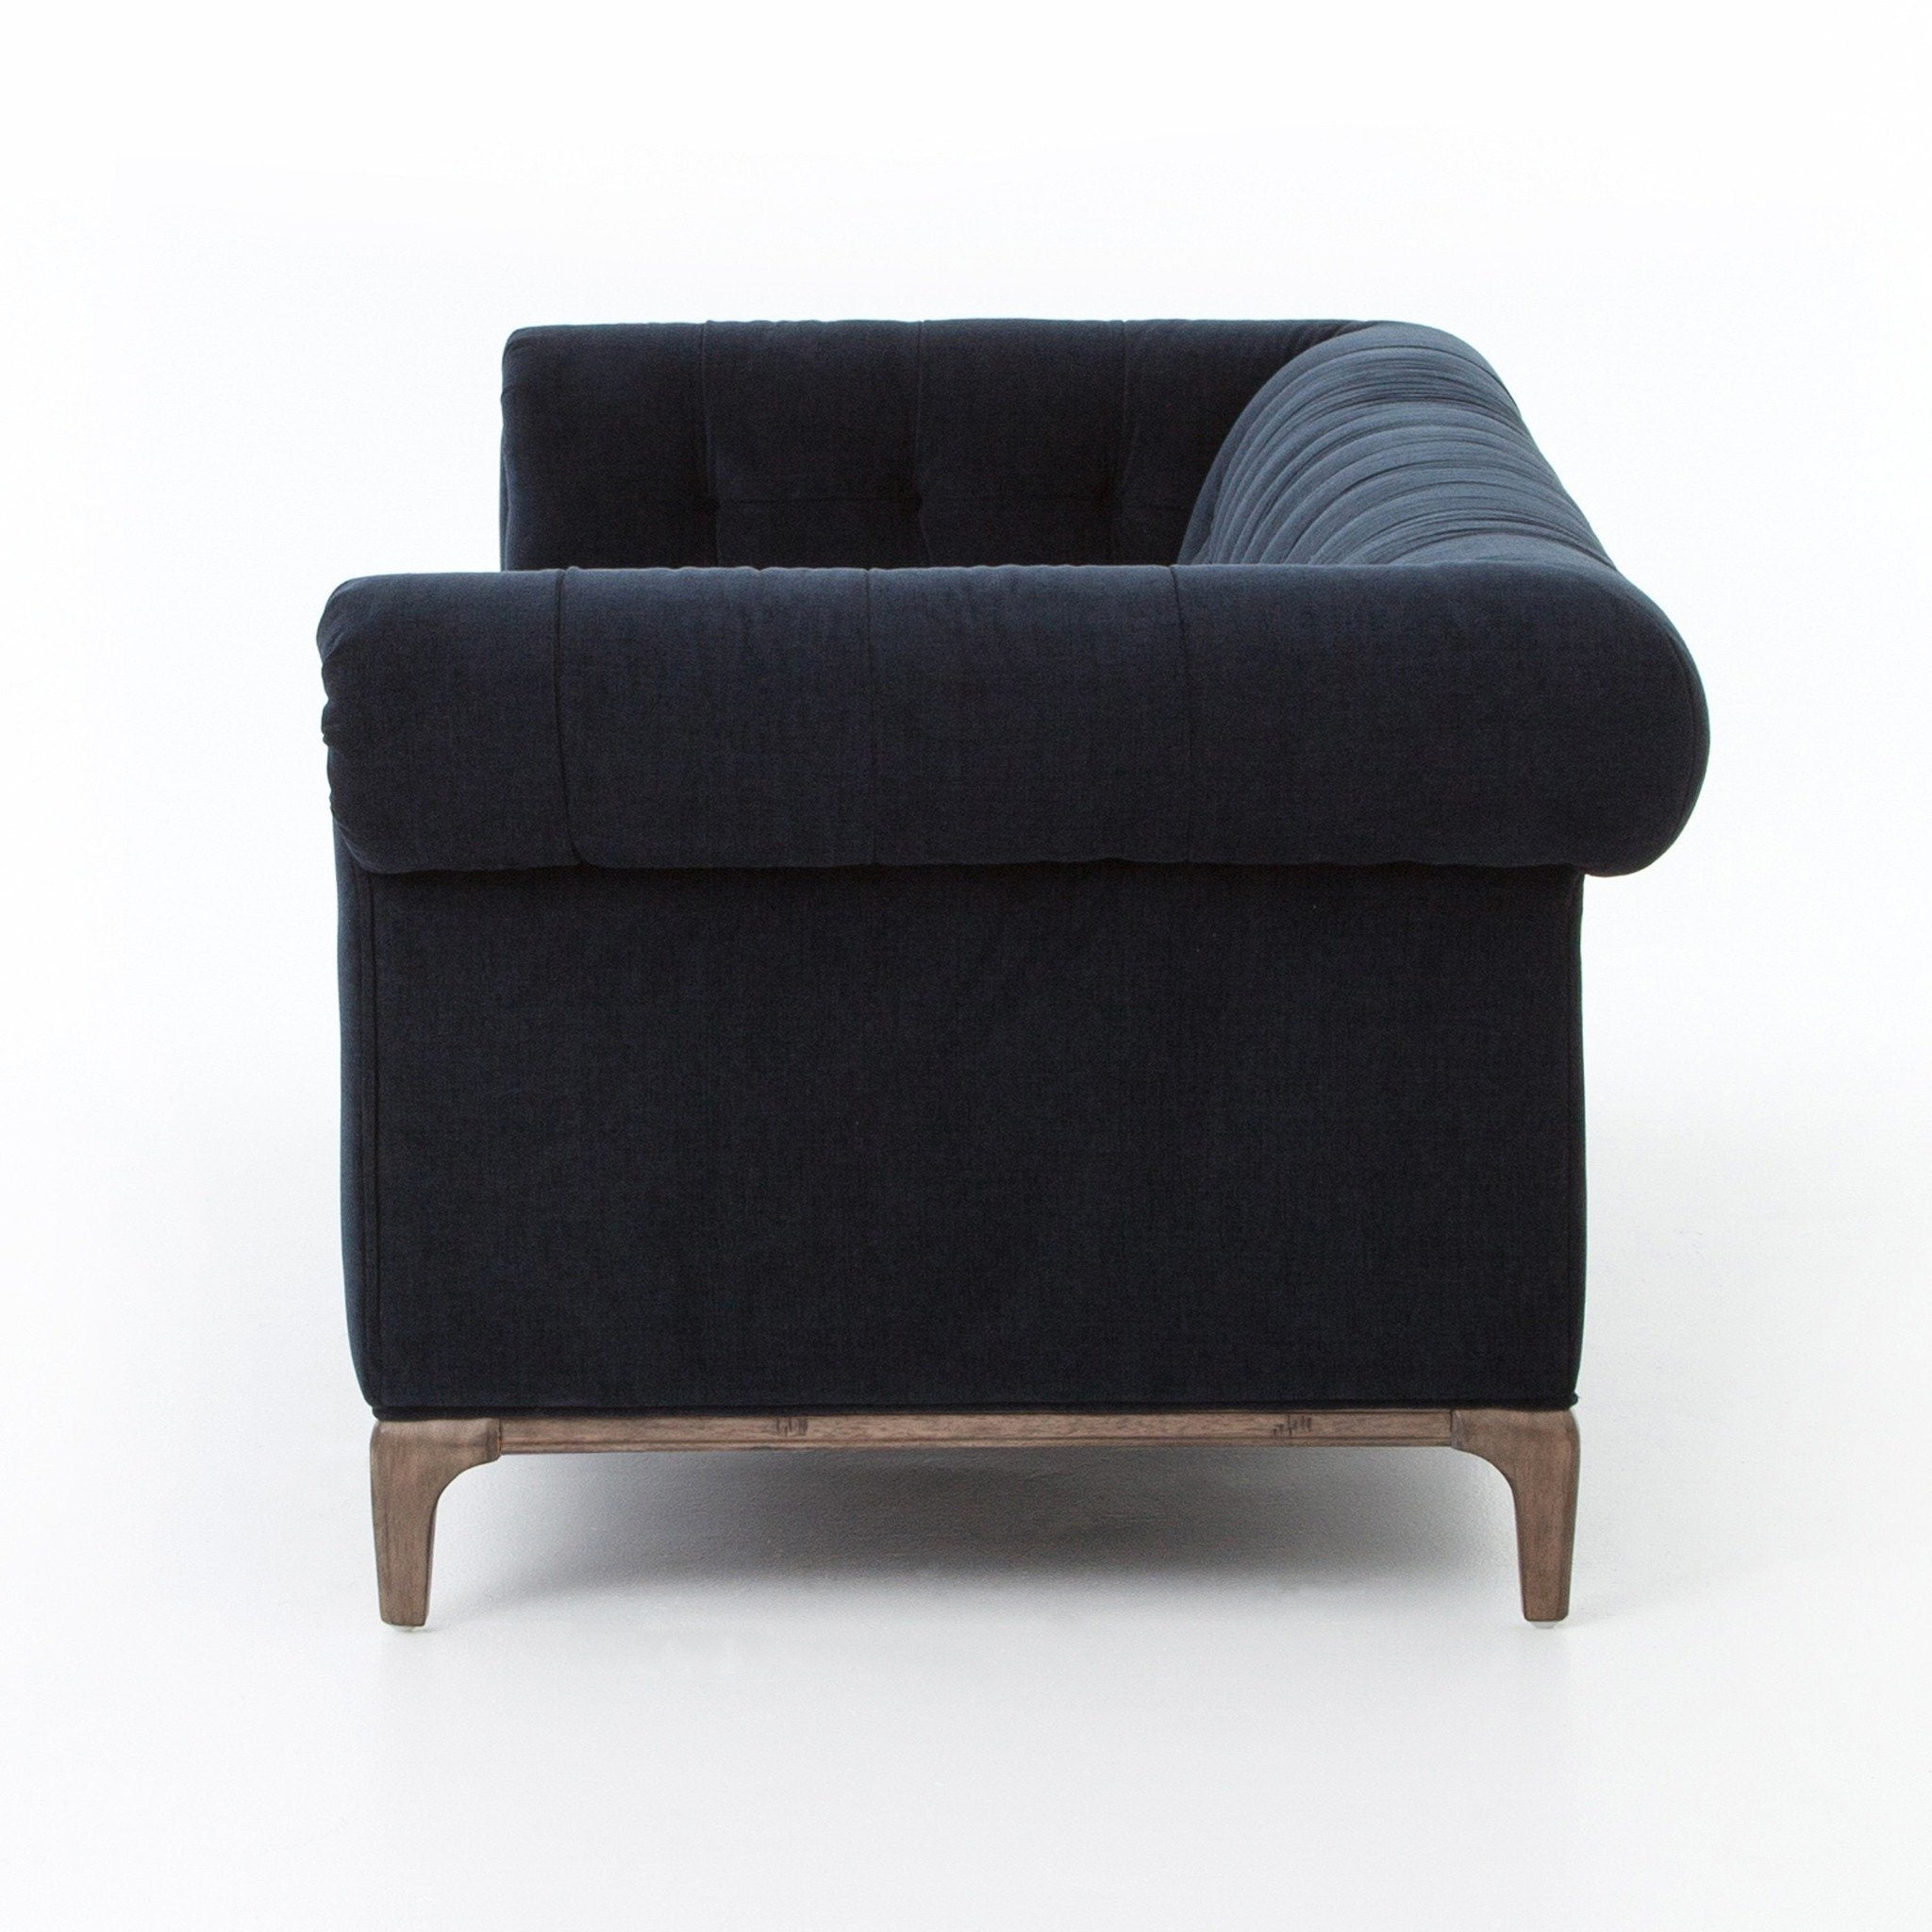 Lovecup Chesterfield Sofa - LOVECUP